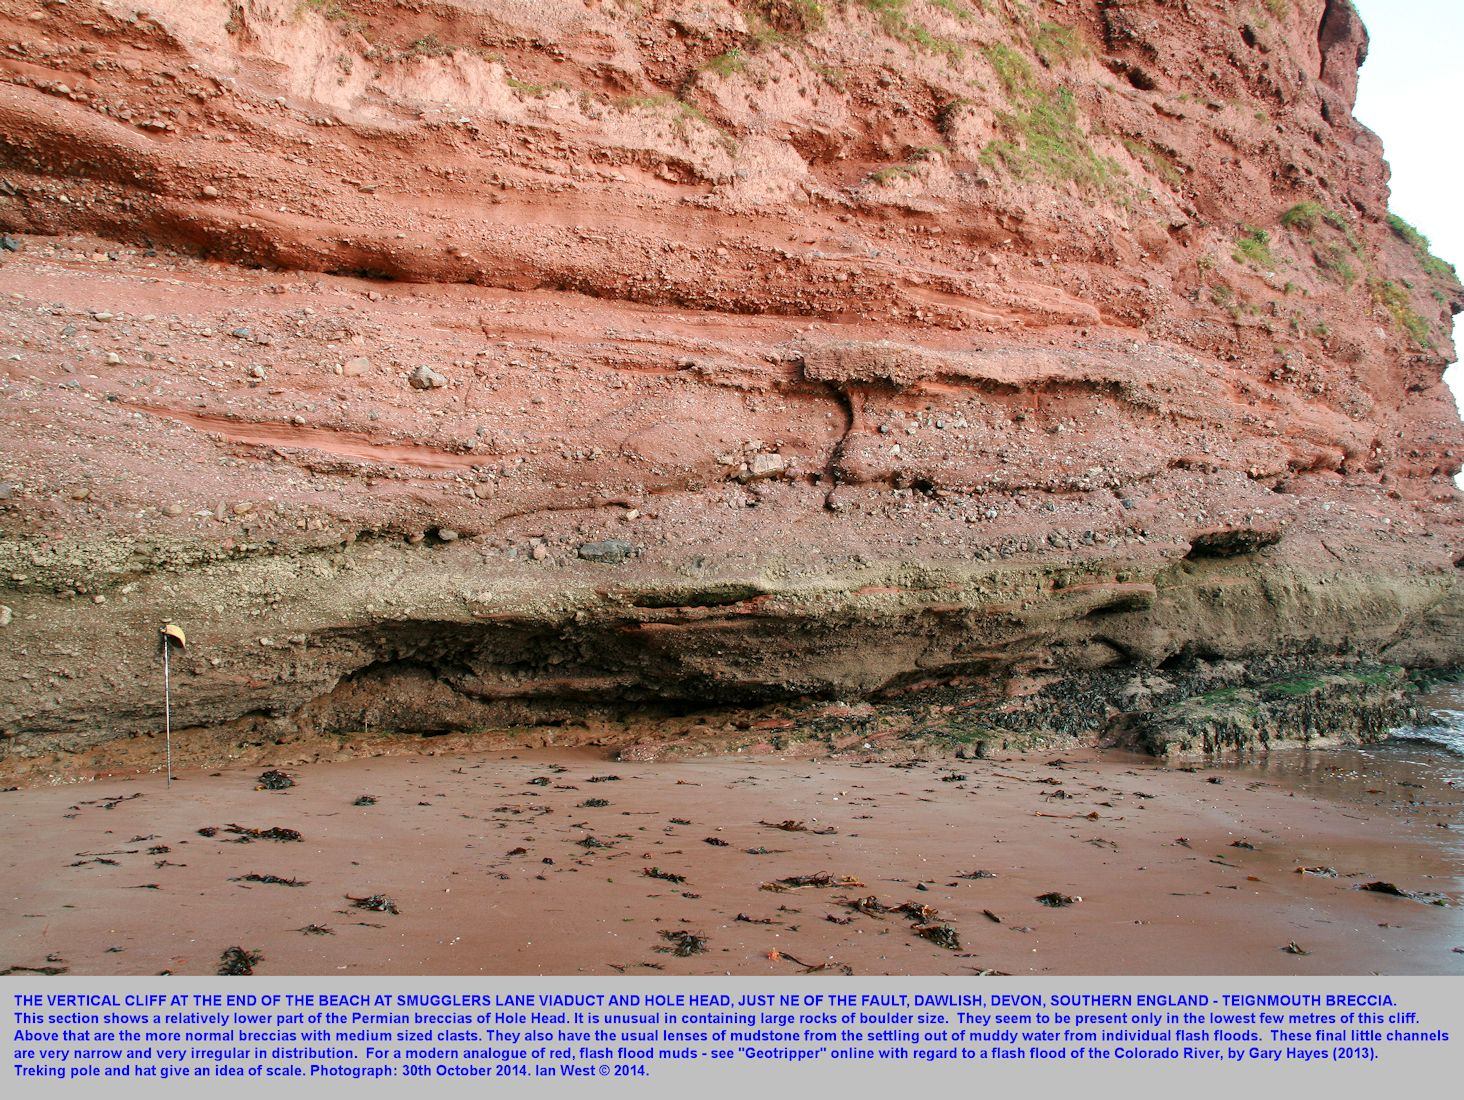 Southwestern Hole Head near Smugglers Lane, Dawlish, Devon - coarse, Permian, Teignmouth Breccia near the base of the cliff, and medium-sized breccia above, with mud-filled channels, 30th October 2014